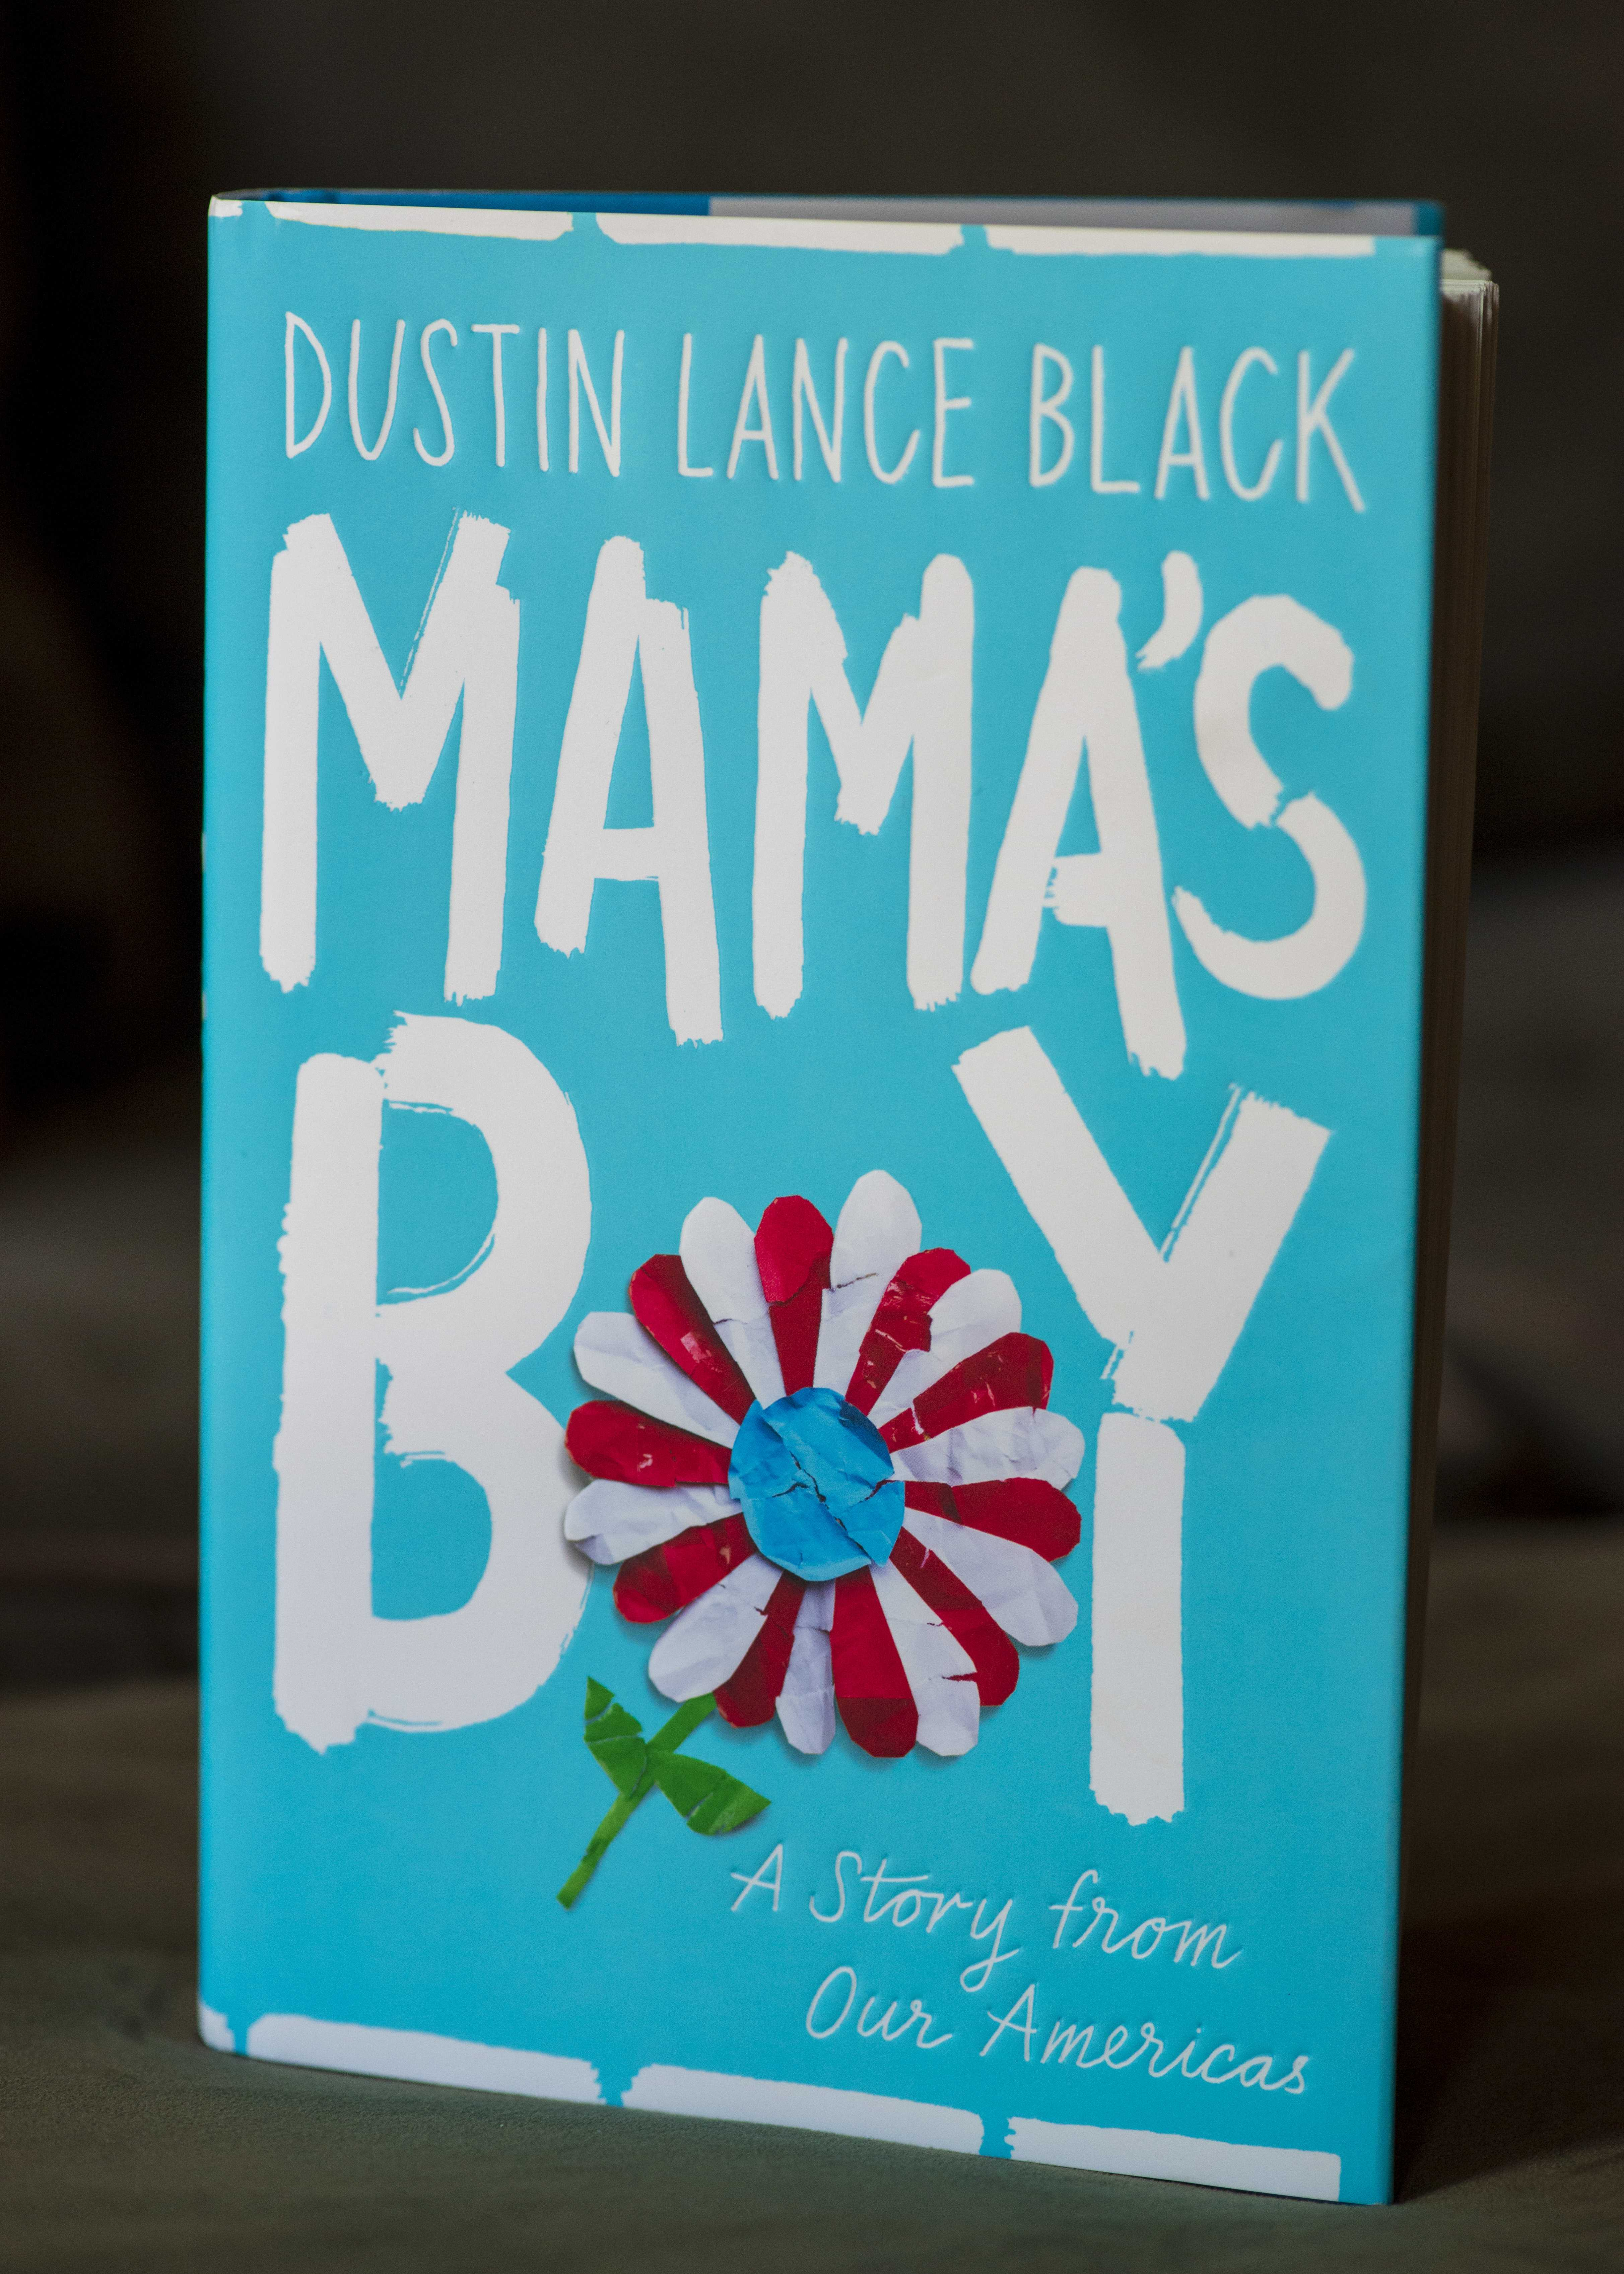 Photographing the book 'Mama's Boy' by Dustin Lance Black in Salt Lake City, UT on Thursday, June 6, 2019. (Photo by Kiffer Creveling | The Daily Utah Chronicle)